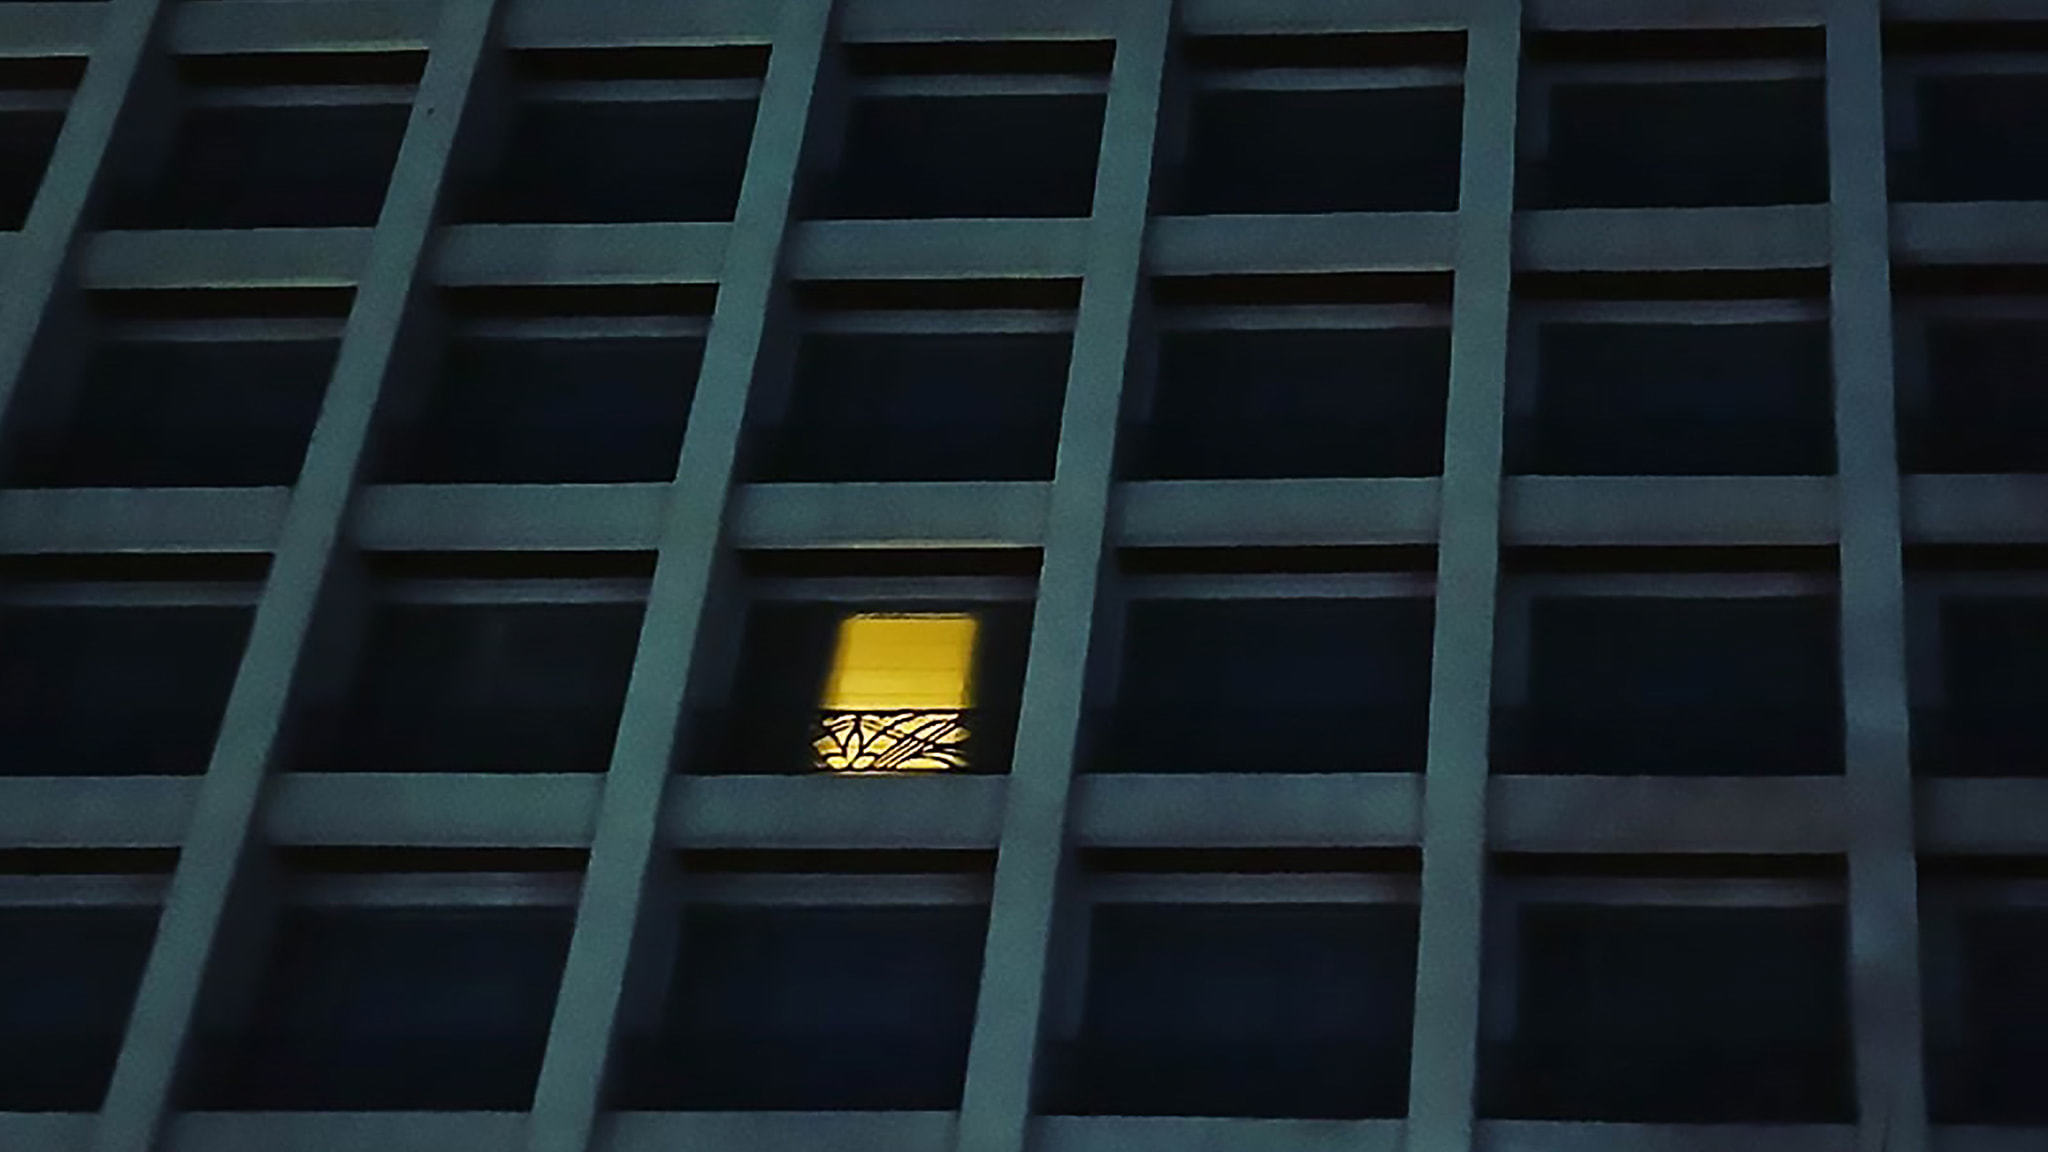 A Close Up Of A Large City Apartment Building With All Lights Out Except One Apartment